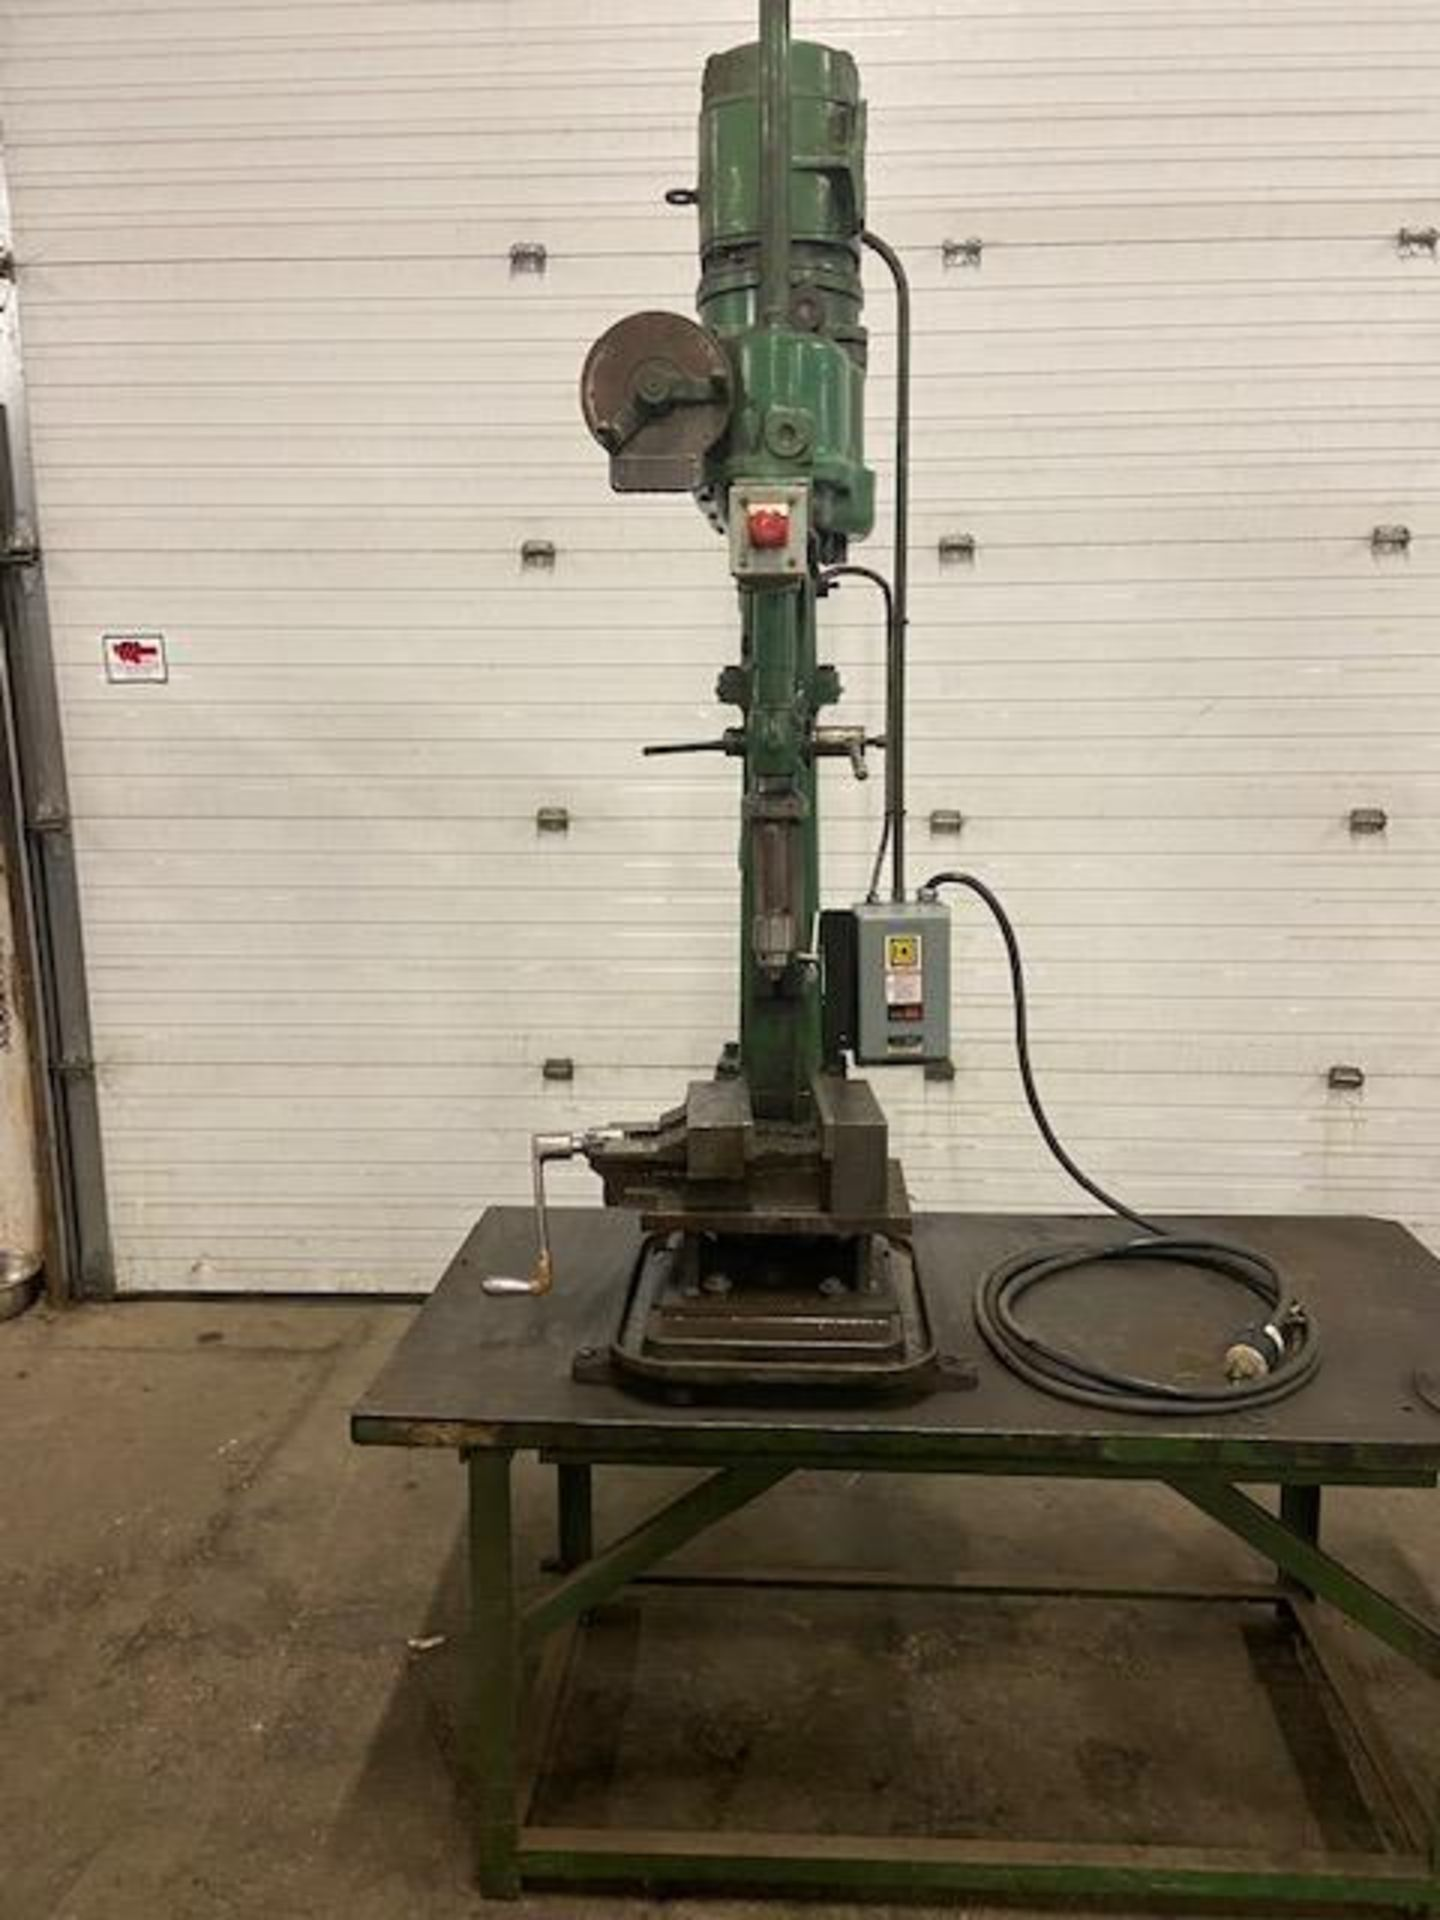 Fredk Pollard Gear Head Drill Press with adjustable table and Square D Breaker